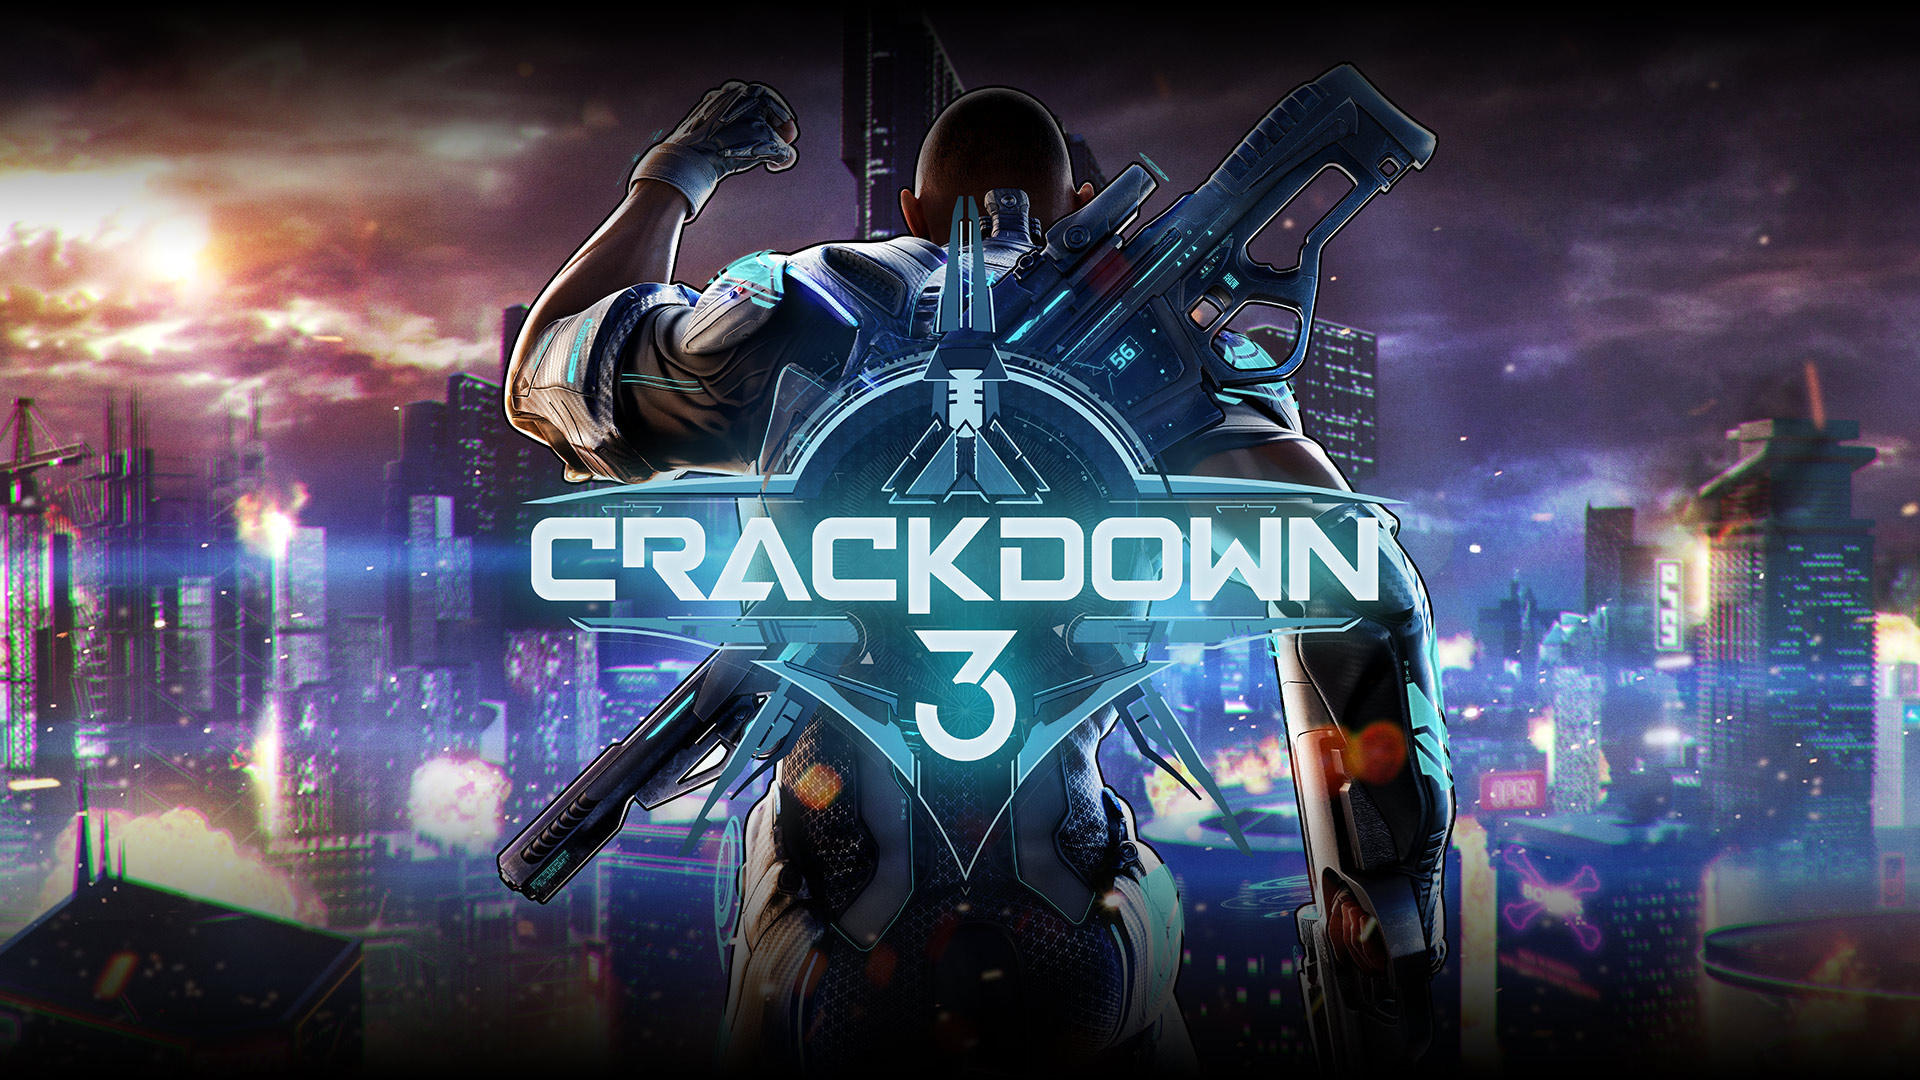 crackdown 3, ending explained